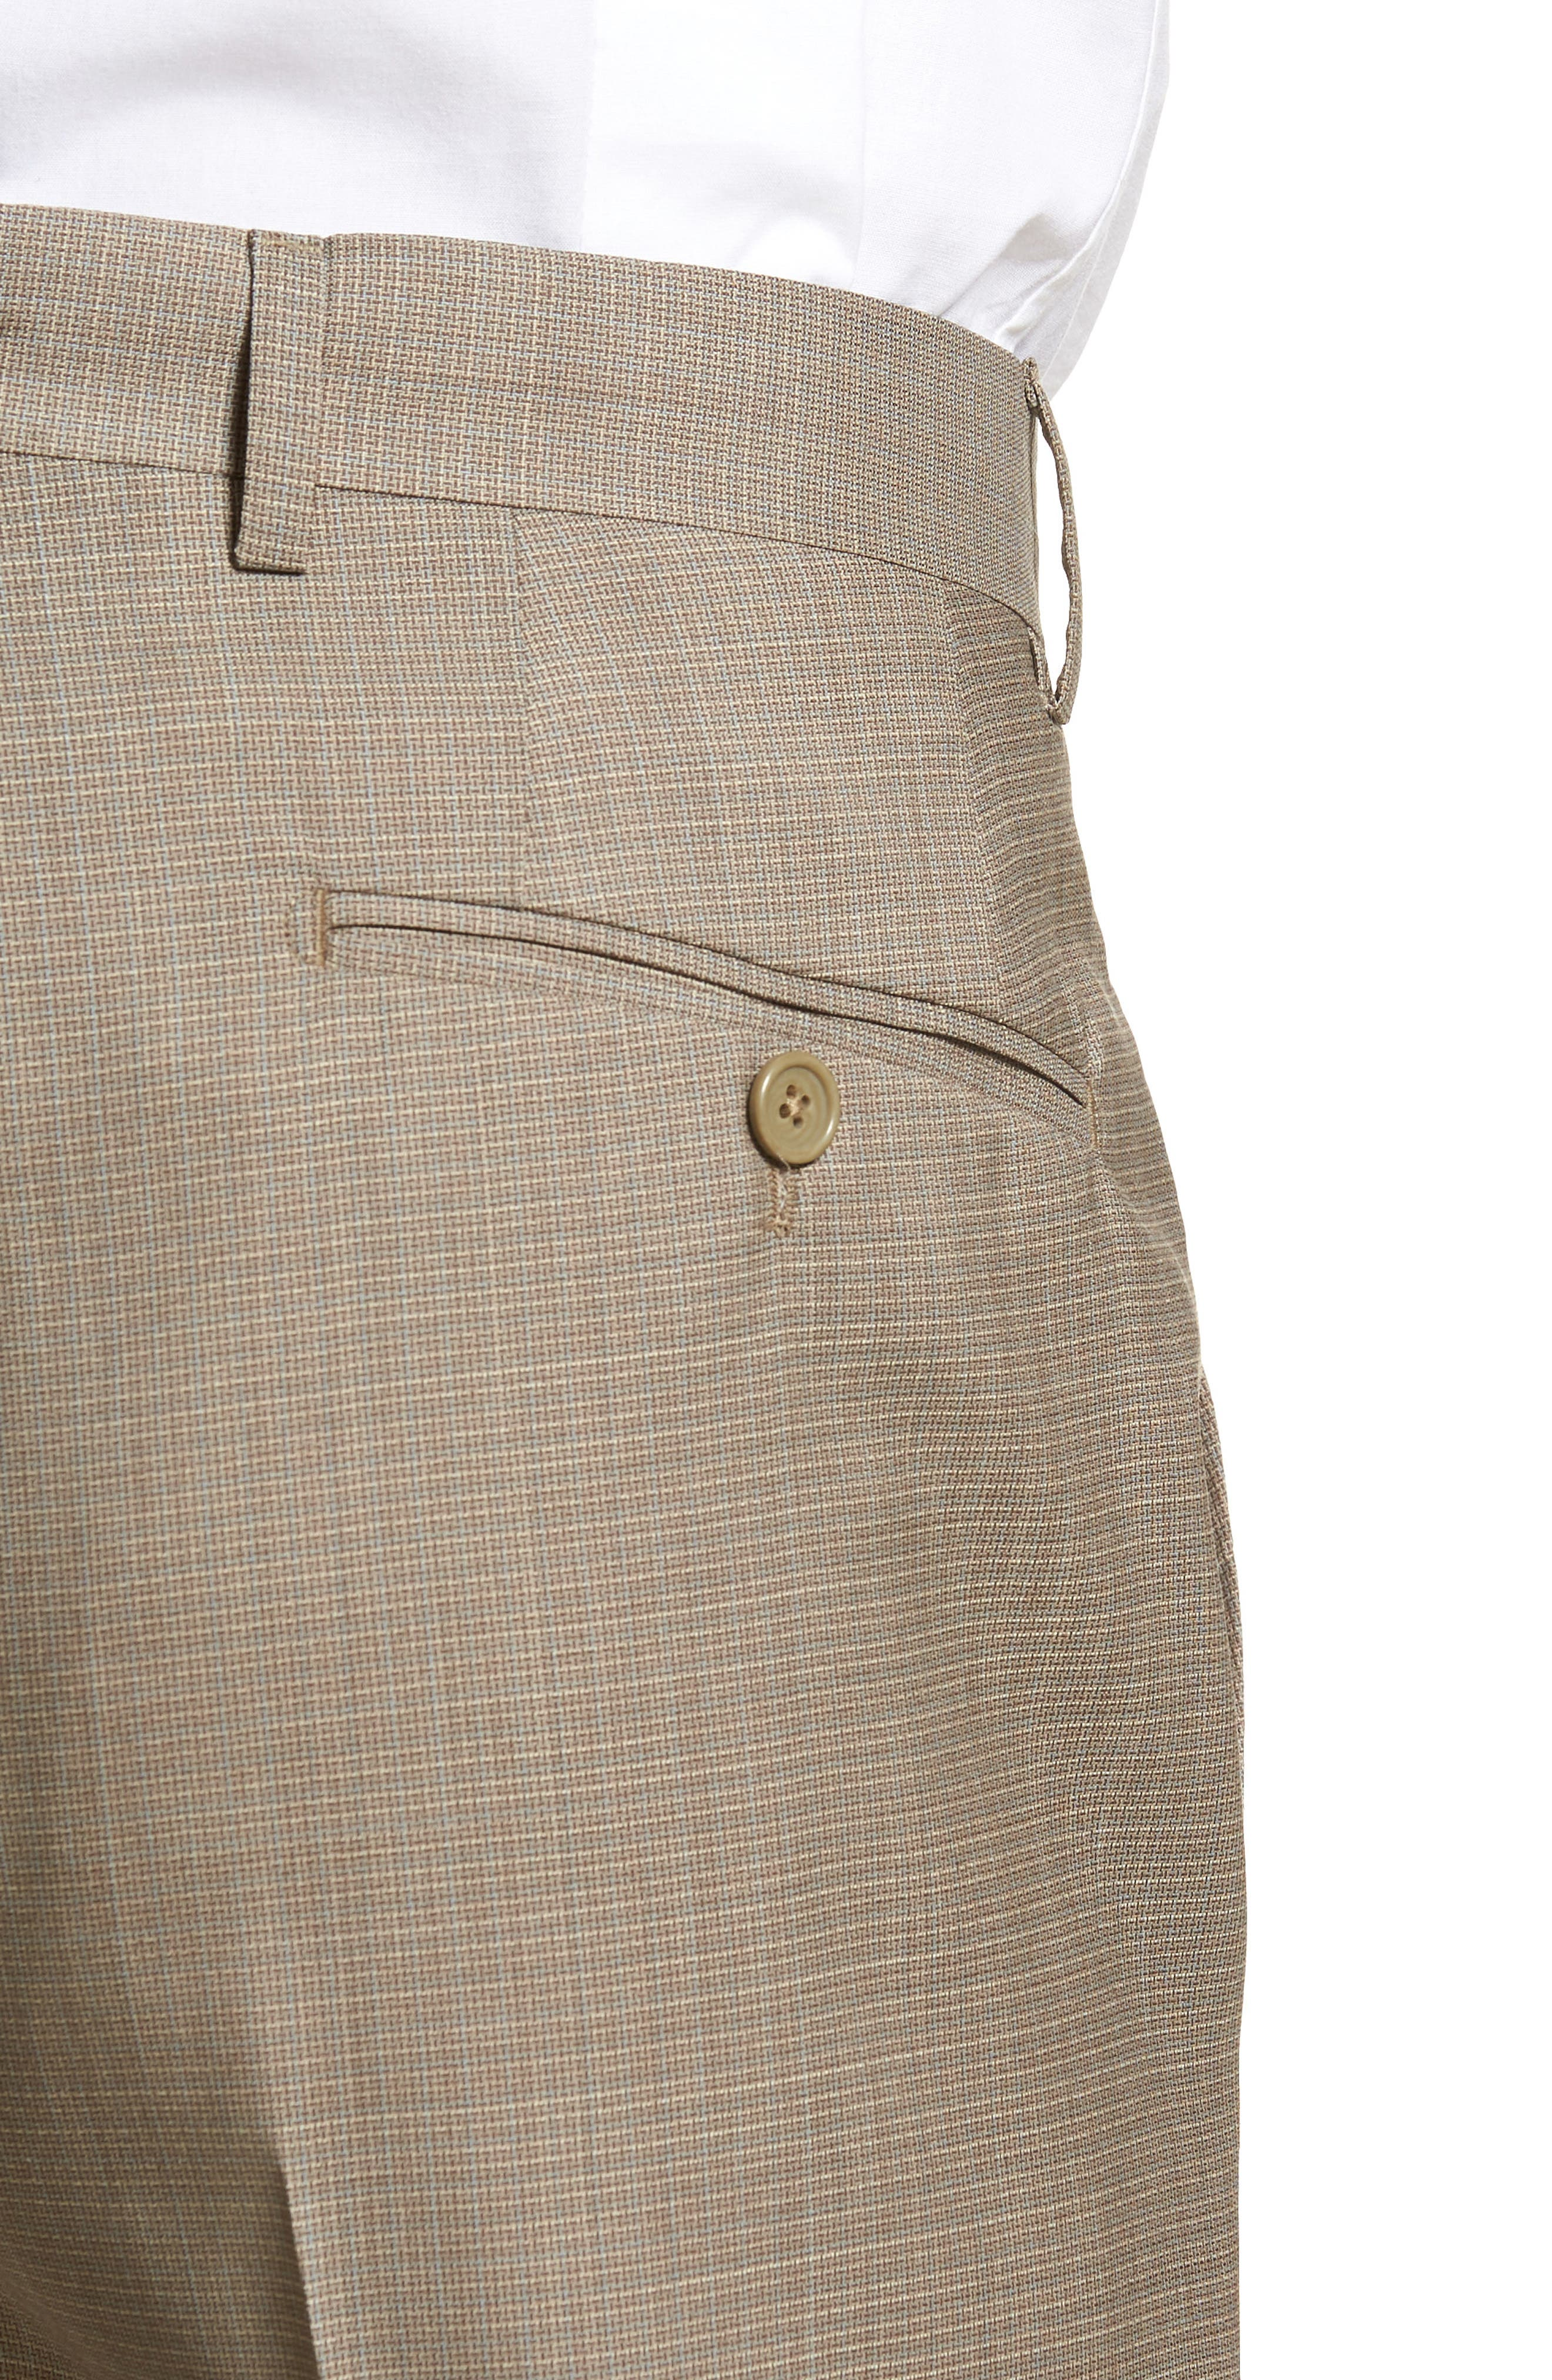 Flat Front Check Wool Trousers,                             Alternate thumbnail 4, color,                             Dark Tan